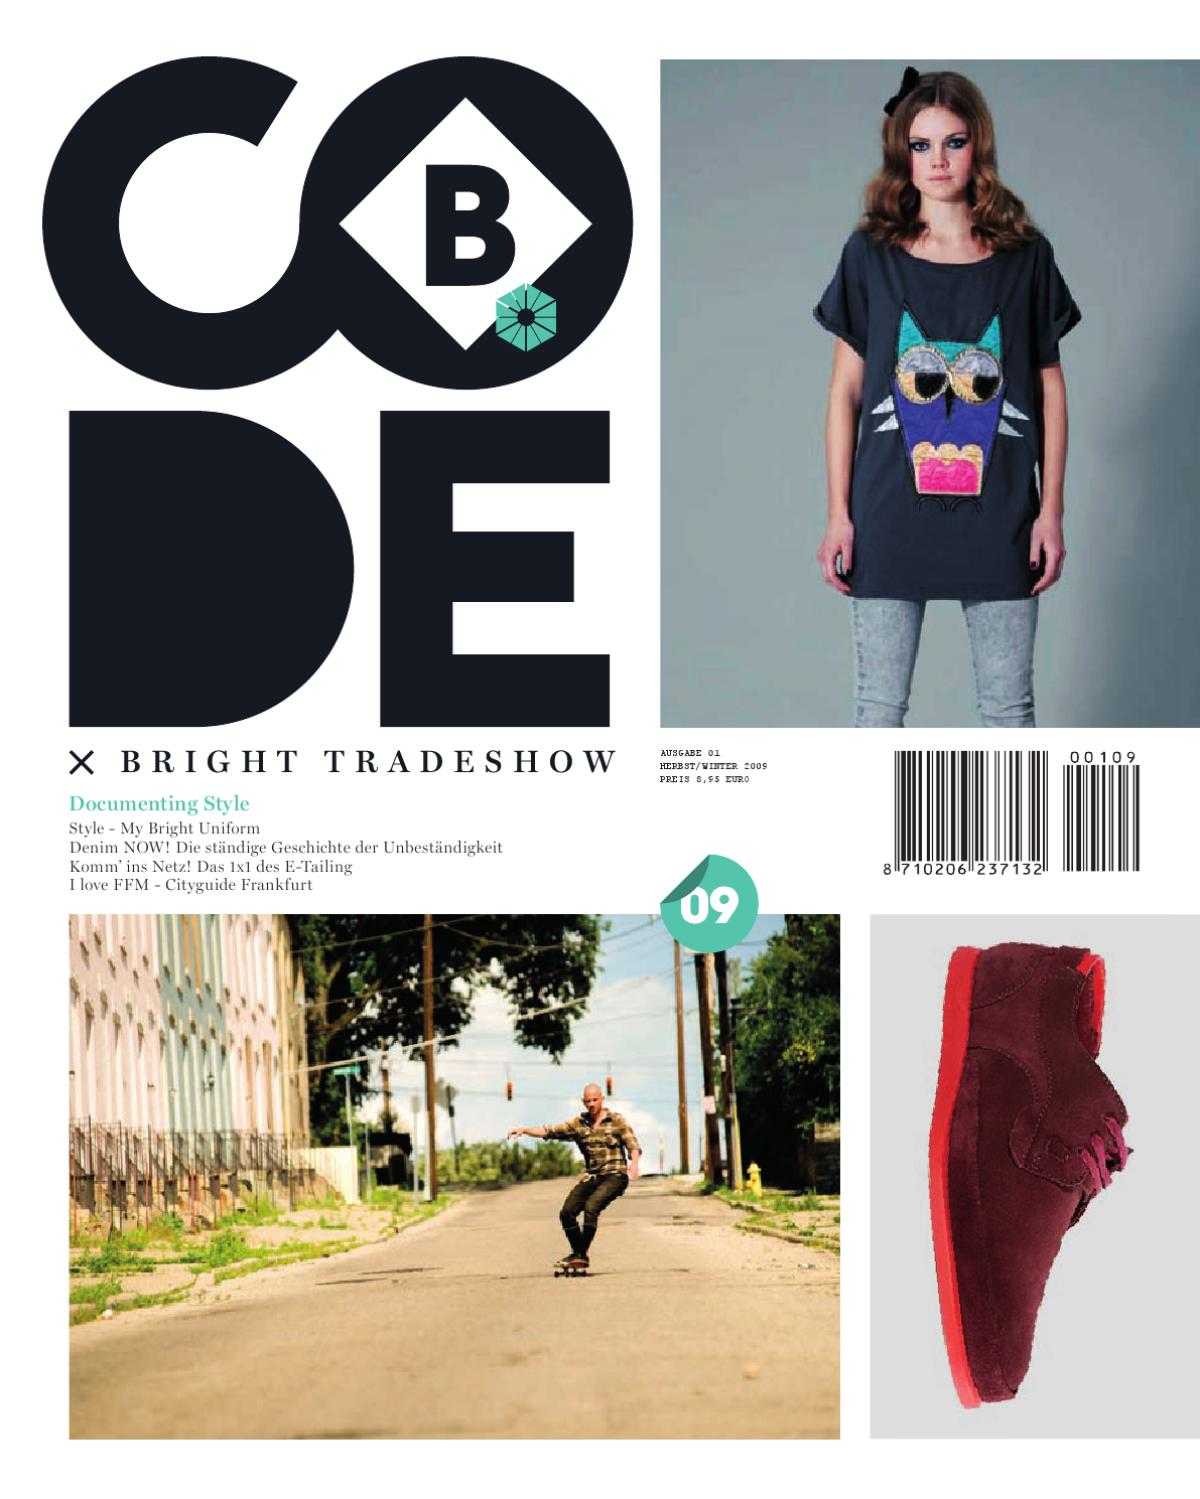 CV issuu by xBright Supertroopers CODE Onk8w0P